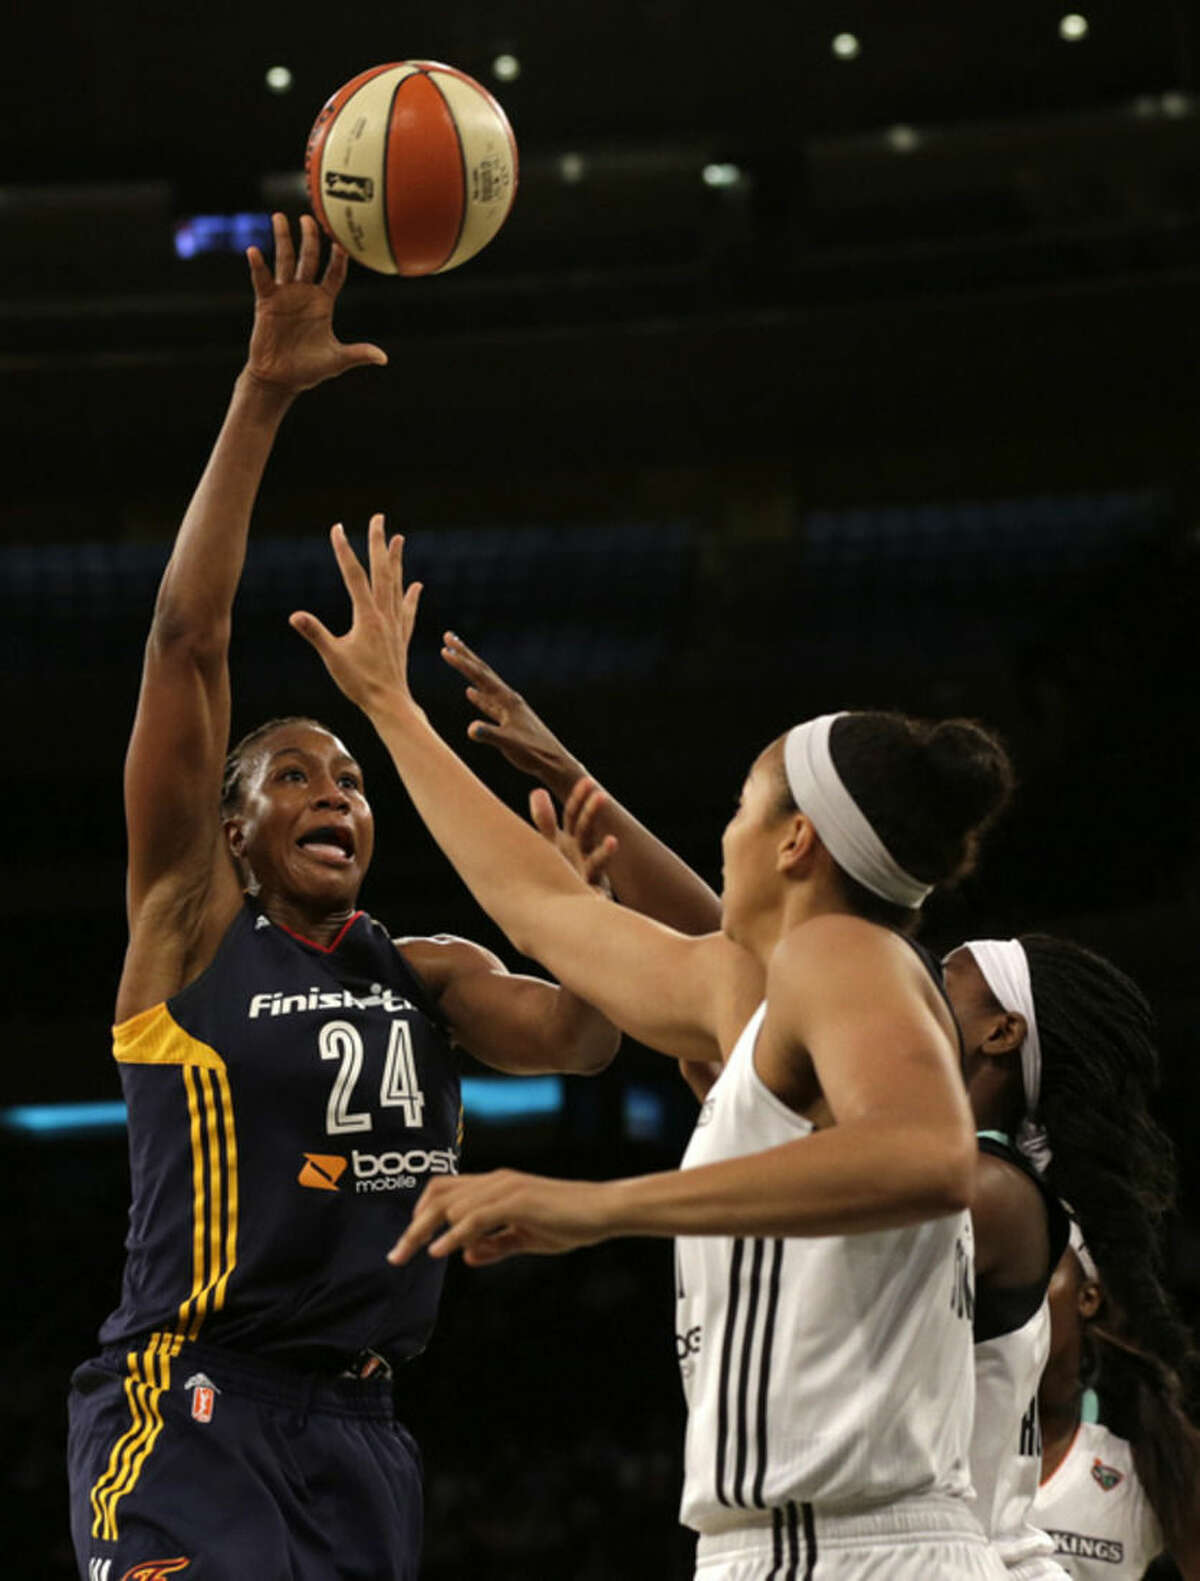 Indiana Fever forward Tamika Catchings, left, shoots over New York Liberty center Kiah Stokes, right, during the first half in Game 3 of the WNBA basketball Eastern Conference finals at Madison Square Garden in New York, Tuesday, Sept. 29, 2015. (AP Photo/Adam Hunger)